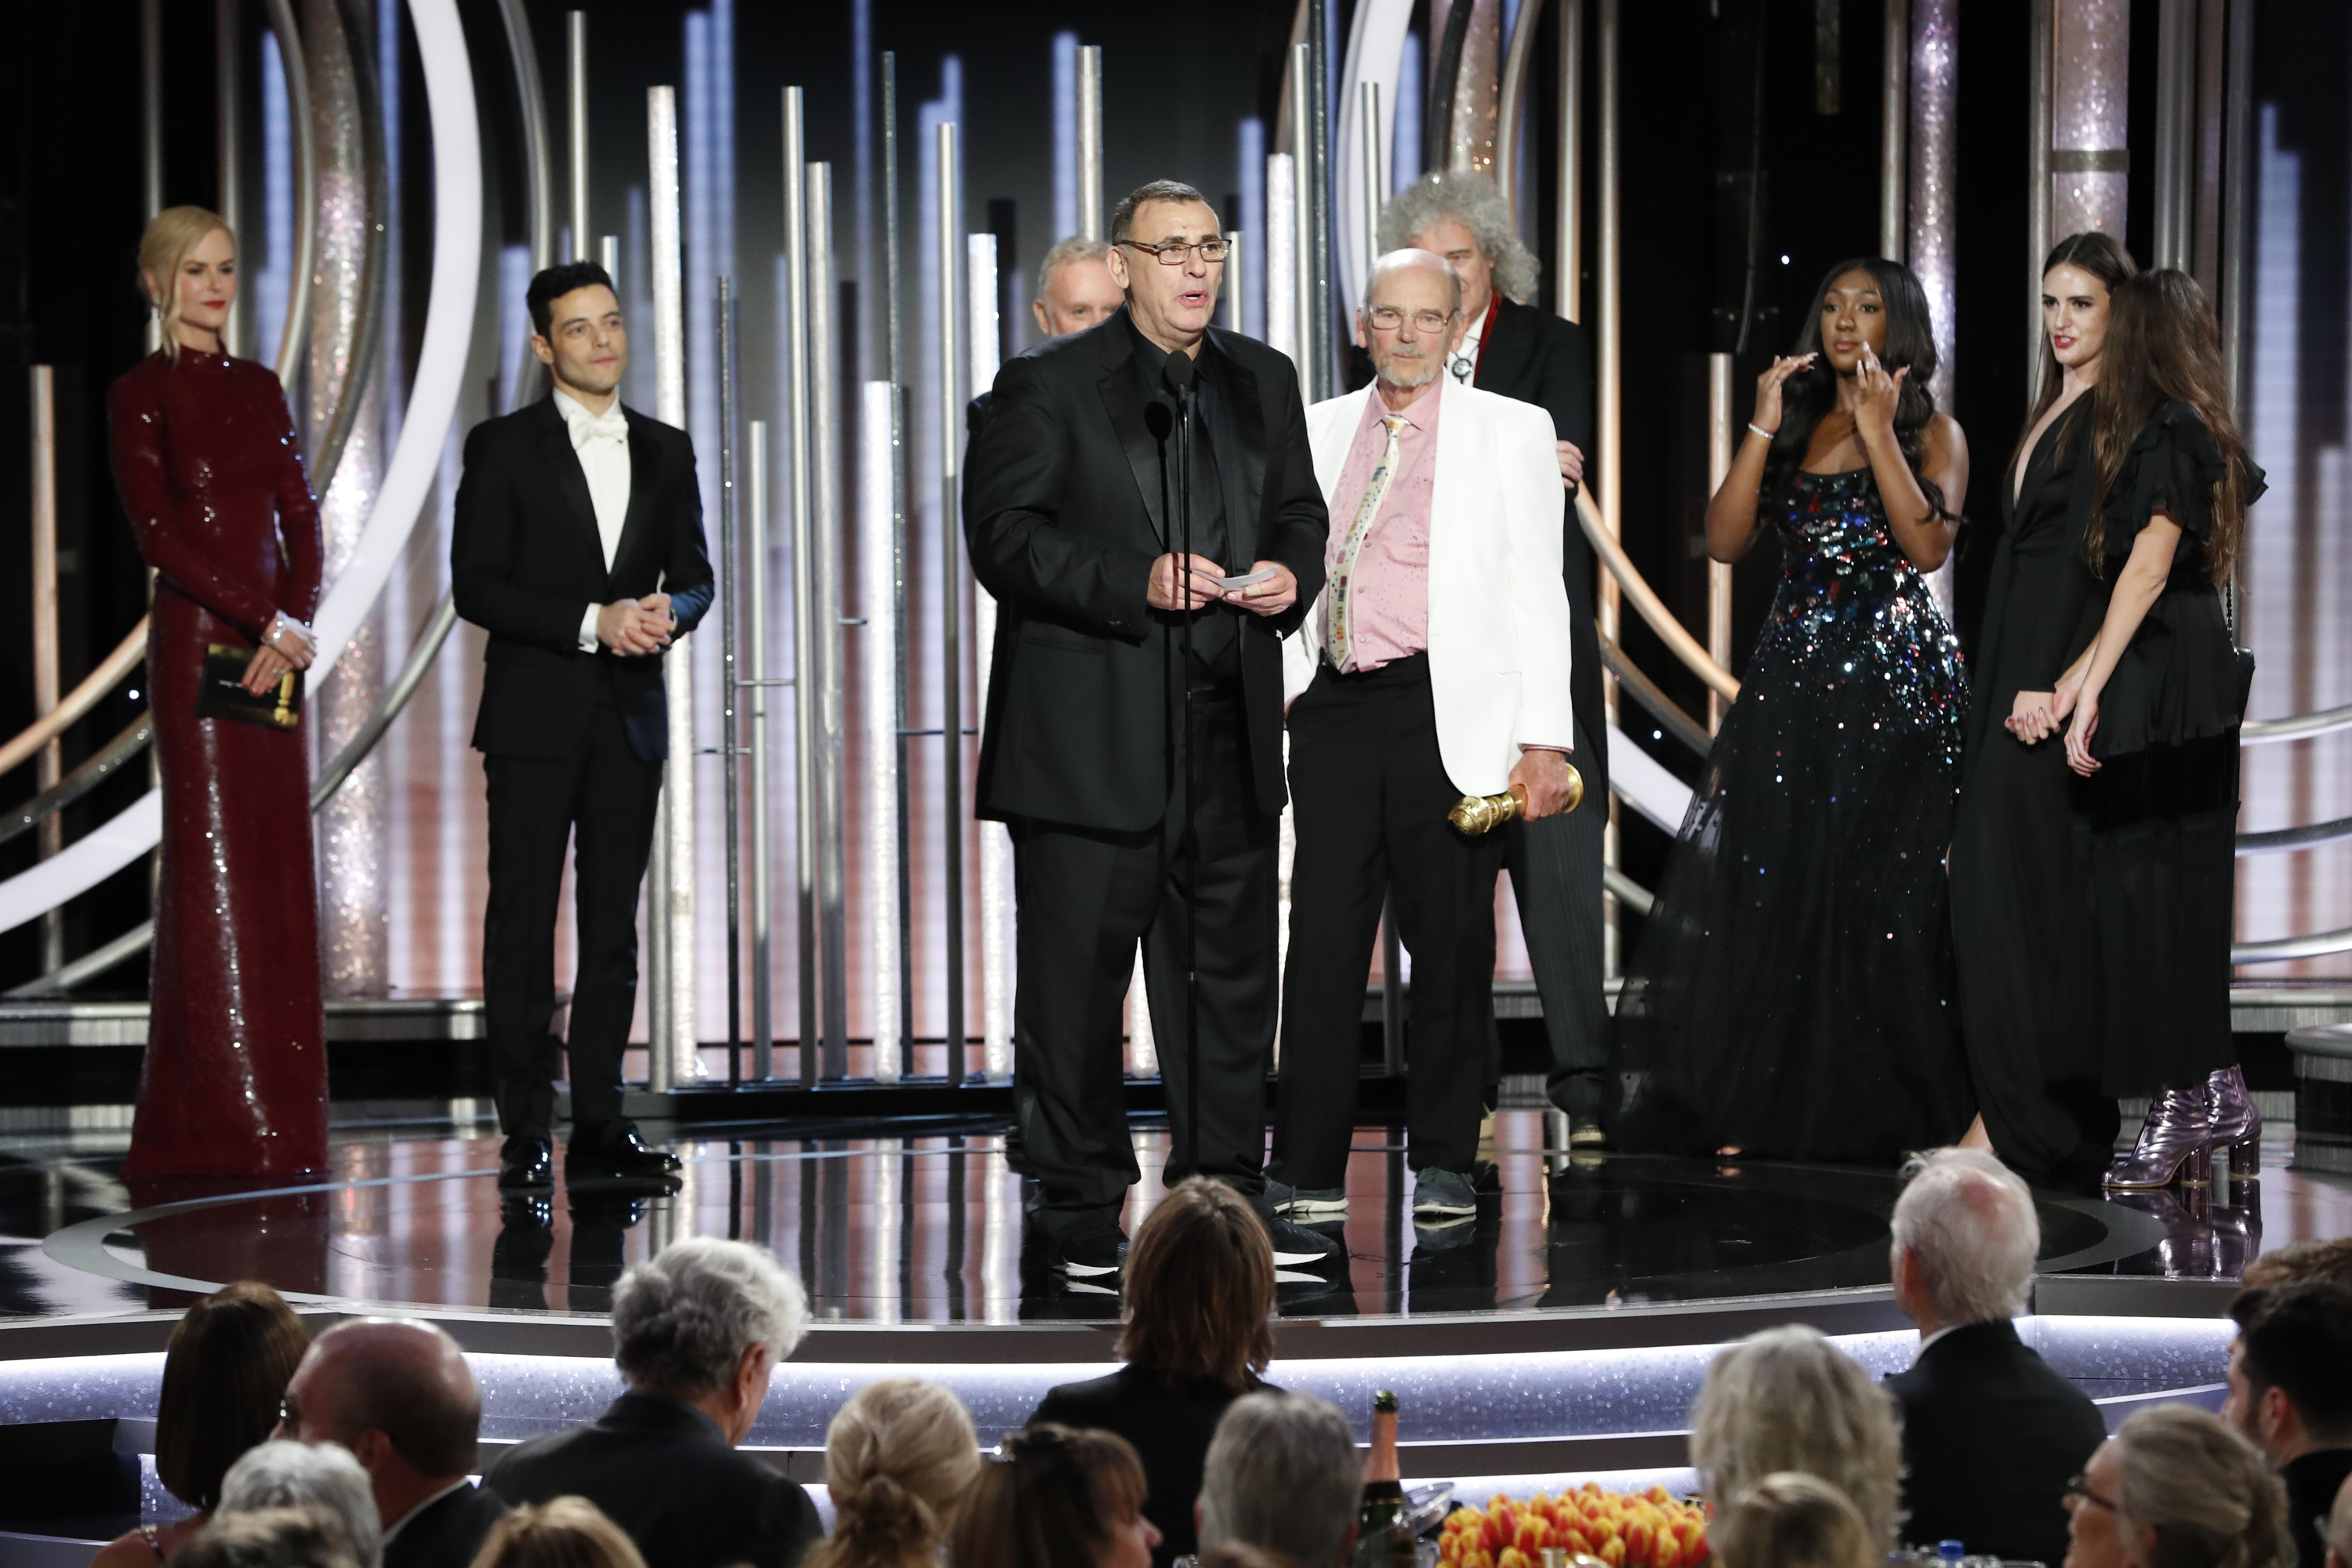 """In this handout photo provided by NBCUniversal, Jim Beach accepts the Best Motion Picture – Drama award for  """"Bohemian Rhapsody"""" speak onstage during the 76th Annual Golden Globe Awards at The Beverly Hilton Hotel on January 06, 2019 in Beverly Hills, California.  (Photo by Paul Drinkwater/NBCUniversal via Getty Images)"""